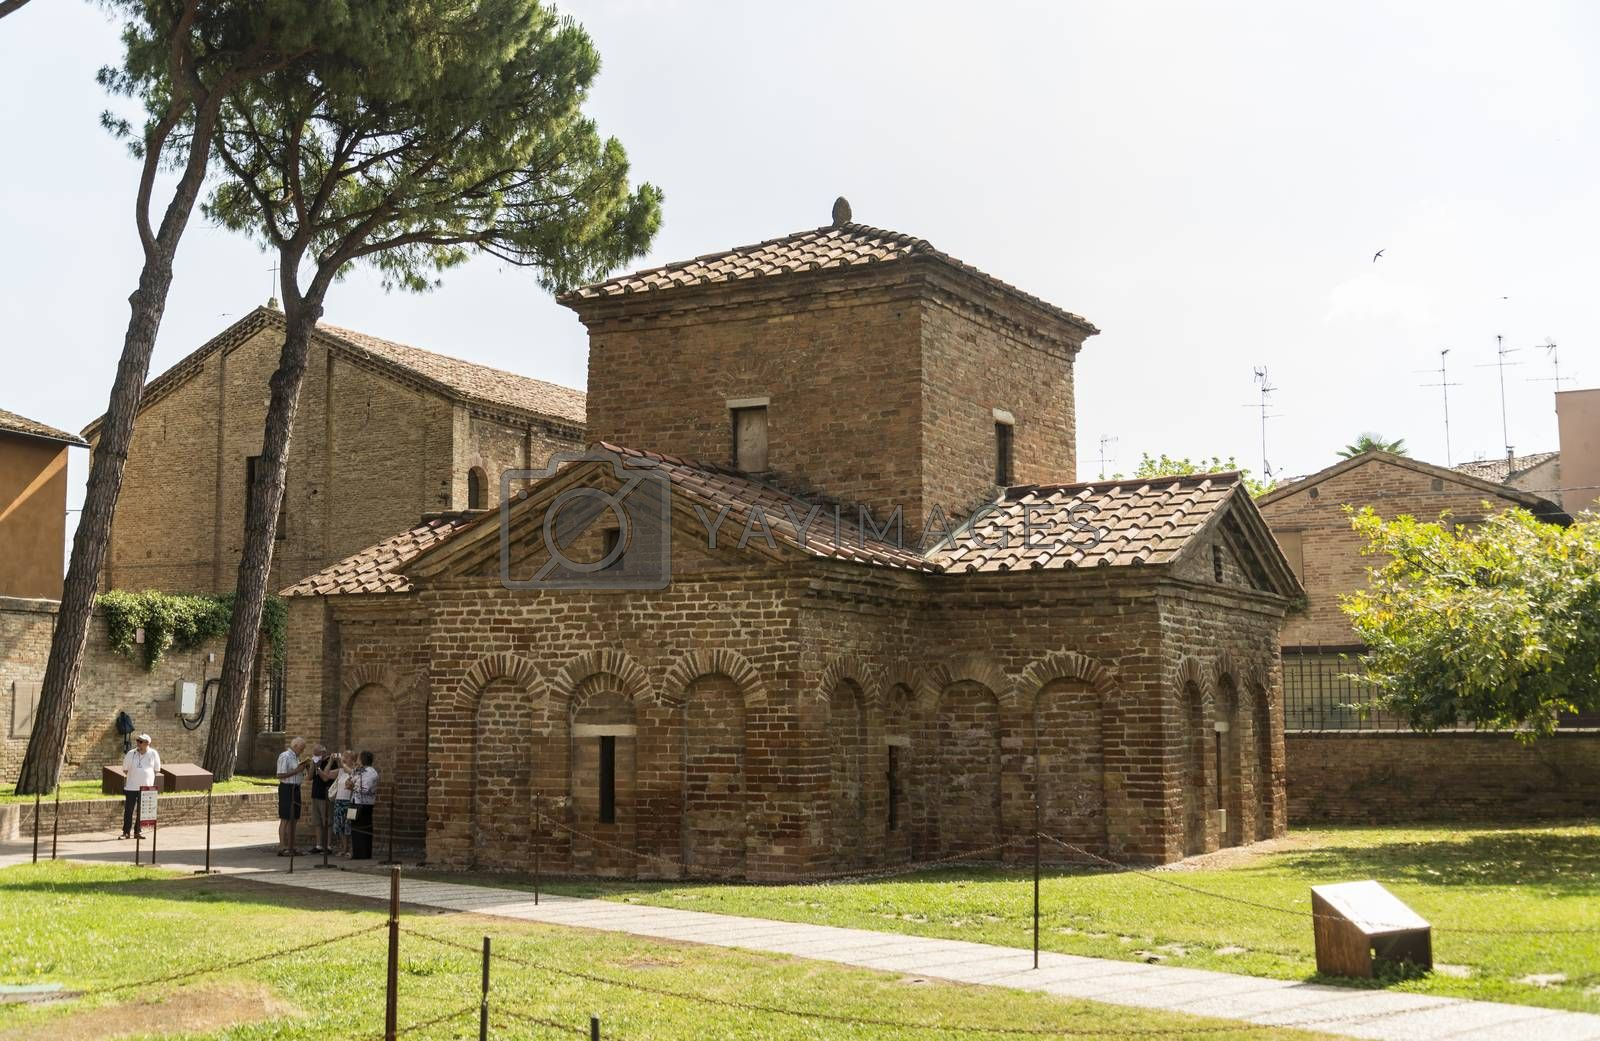 RAVENNA -JUNE 17: famous Basilica di San Vitale, one of the most important examples of early Christian Byzantine art in western Europe, on june 17, 2017 in Ravenna, region of Emilia-Romagna, Italy